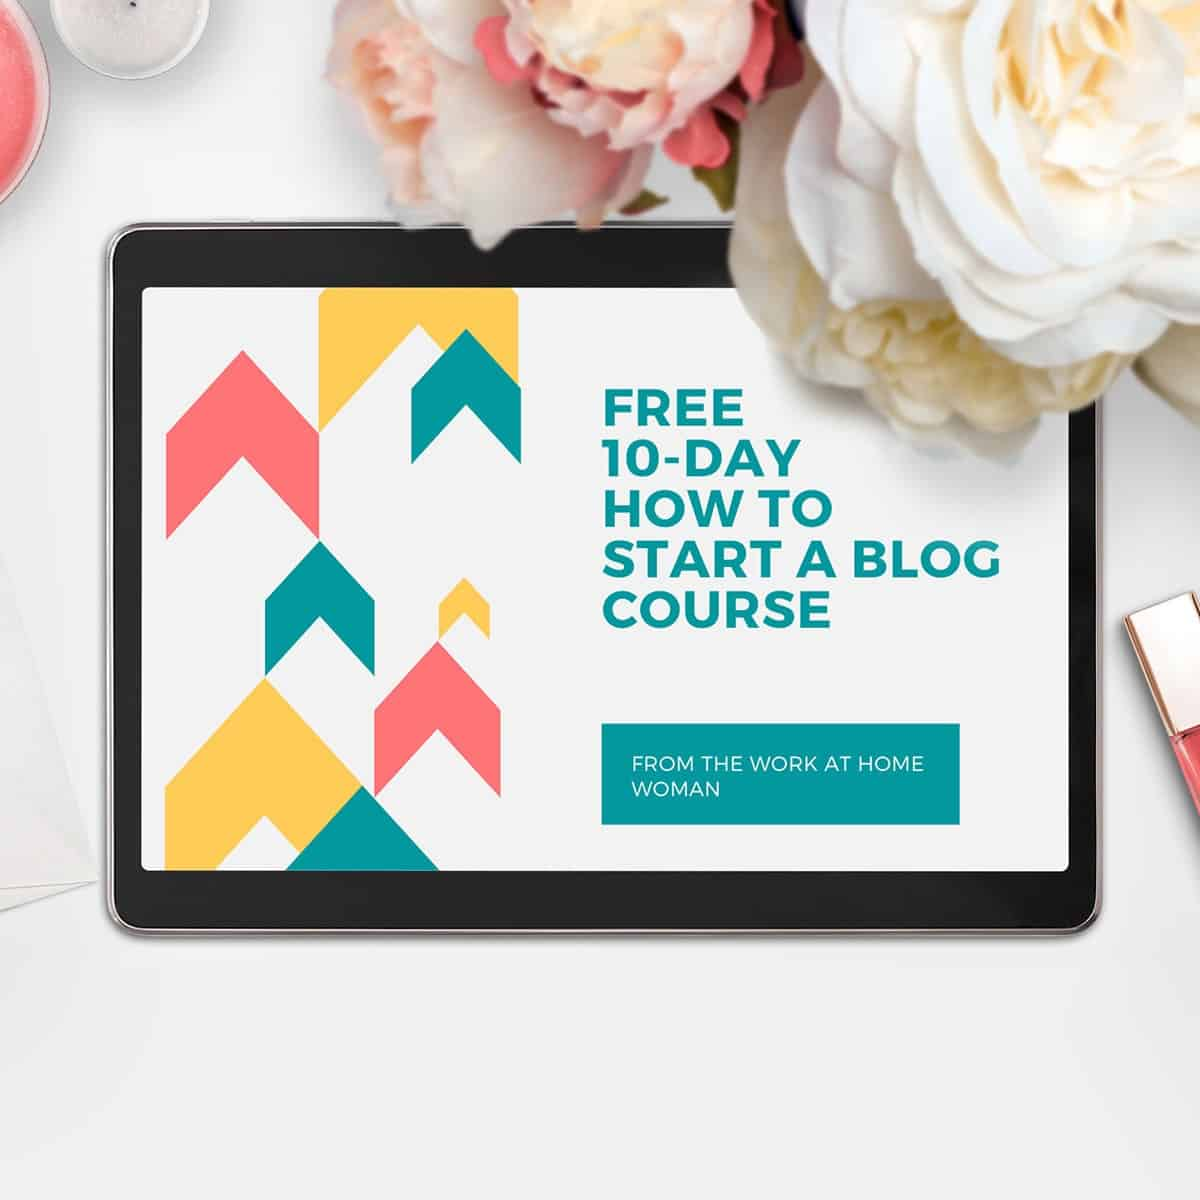 free 10-day blogging course